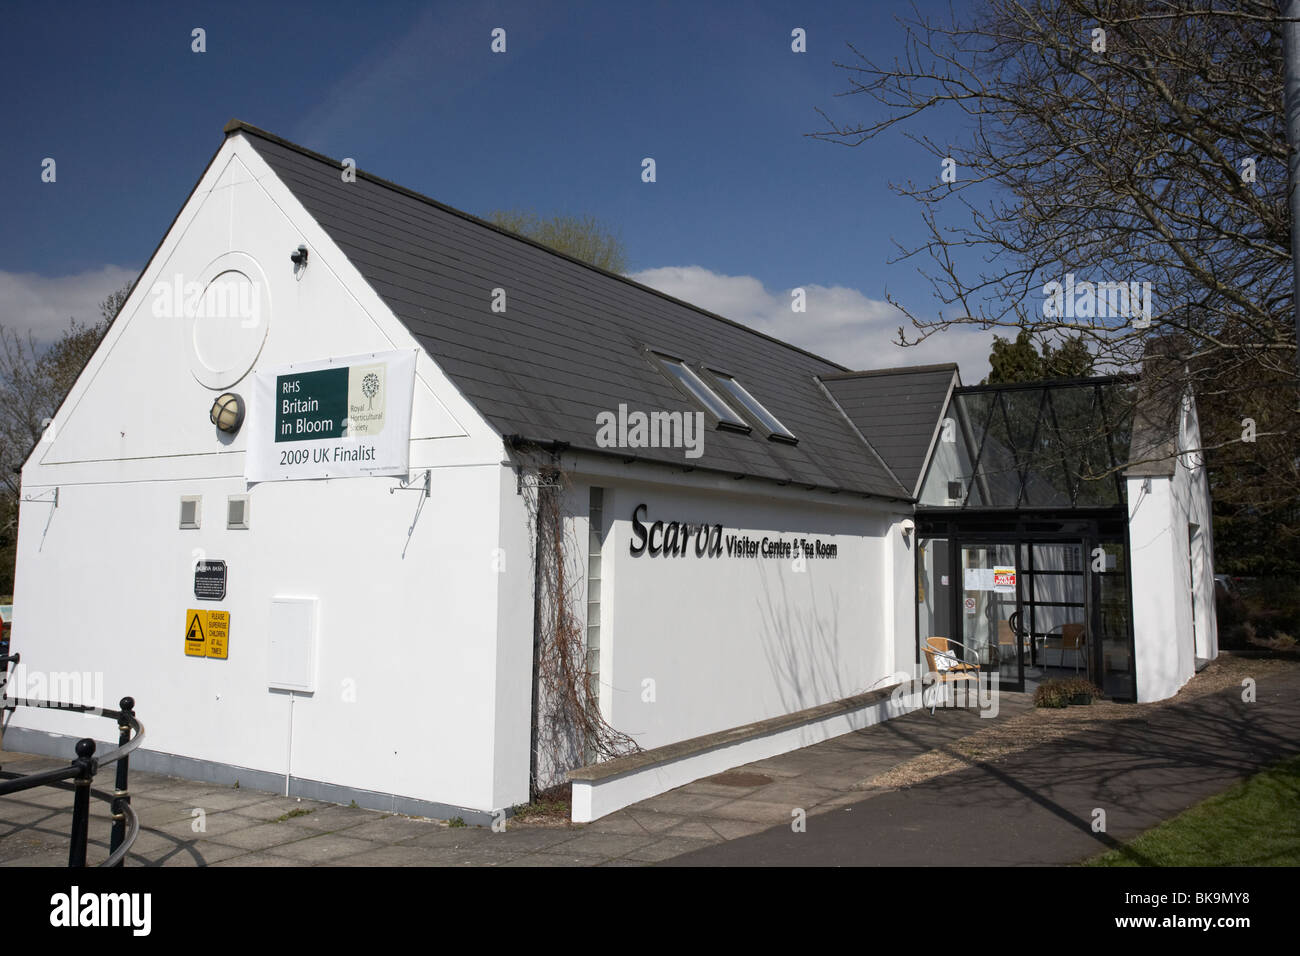 scarva visitor centre and tea rooms in village county down northern ireland uk - Stock Image